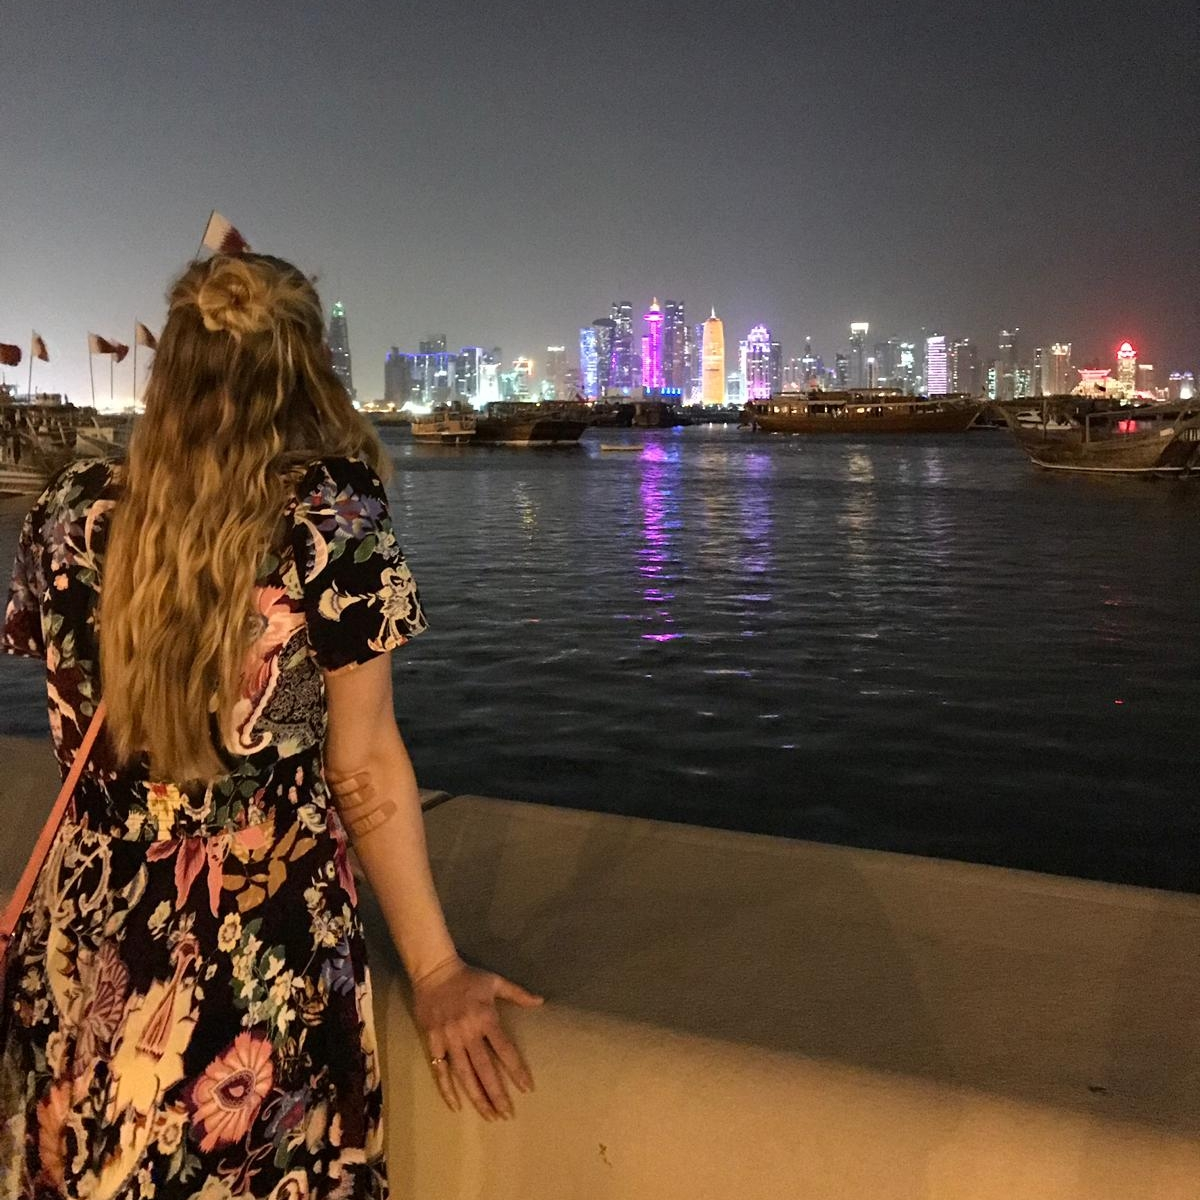 One of my last nights in Doha.